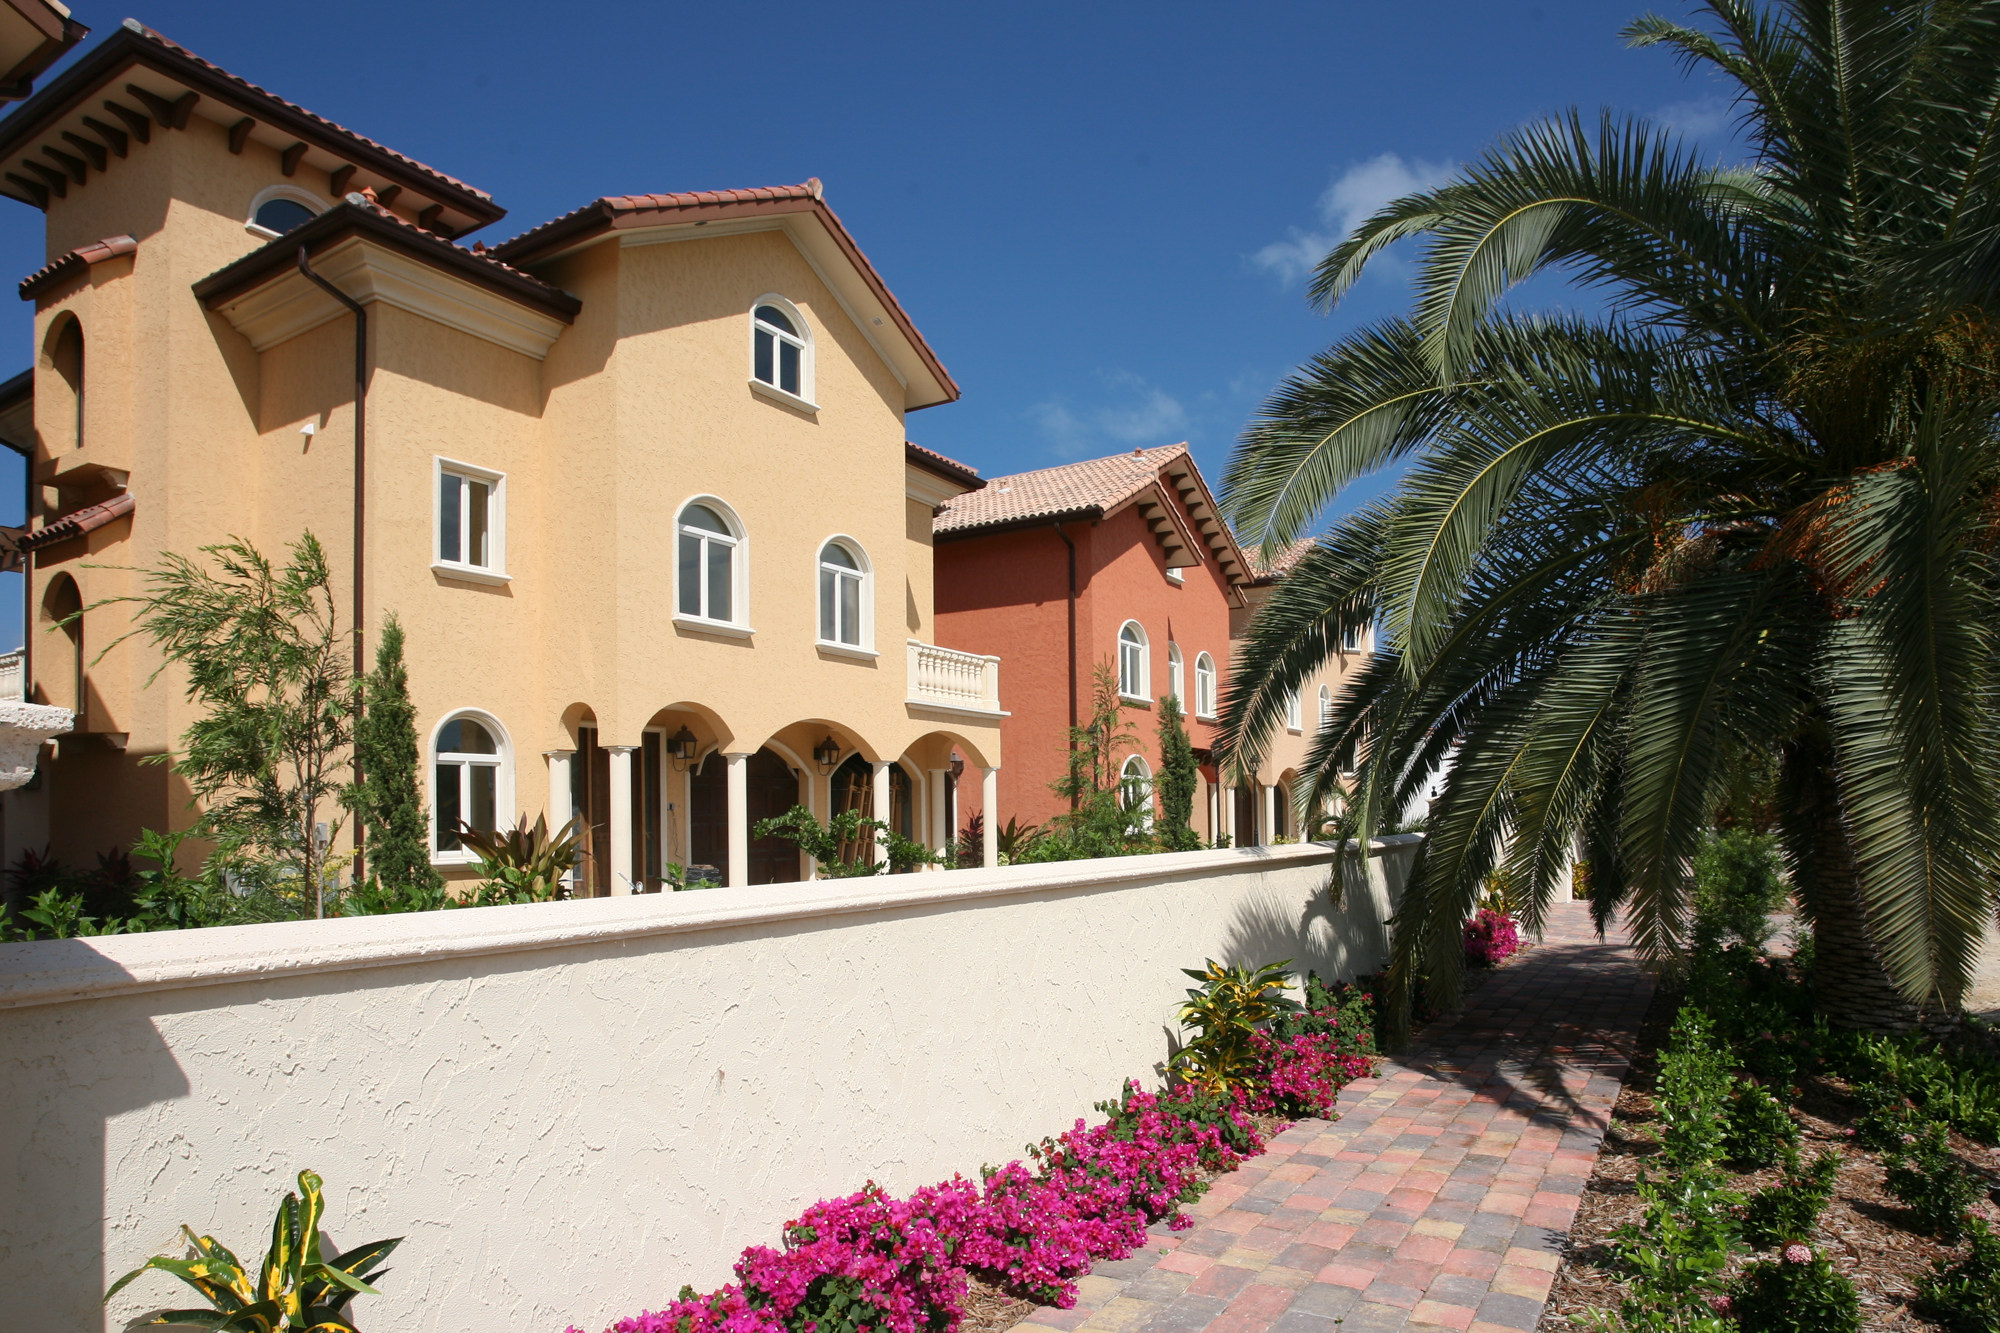 Property For Sale at Villa Sorrento #3 - Luxury Real estate in Cayman